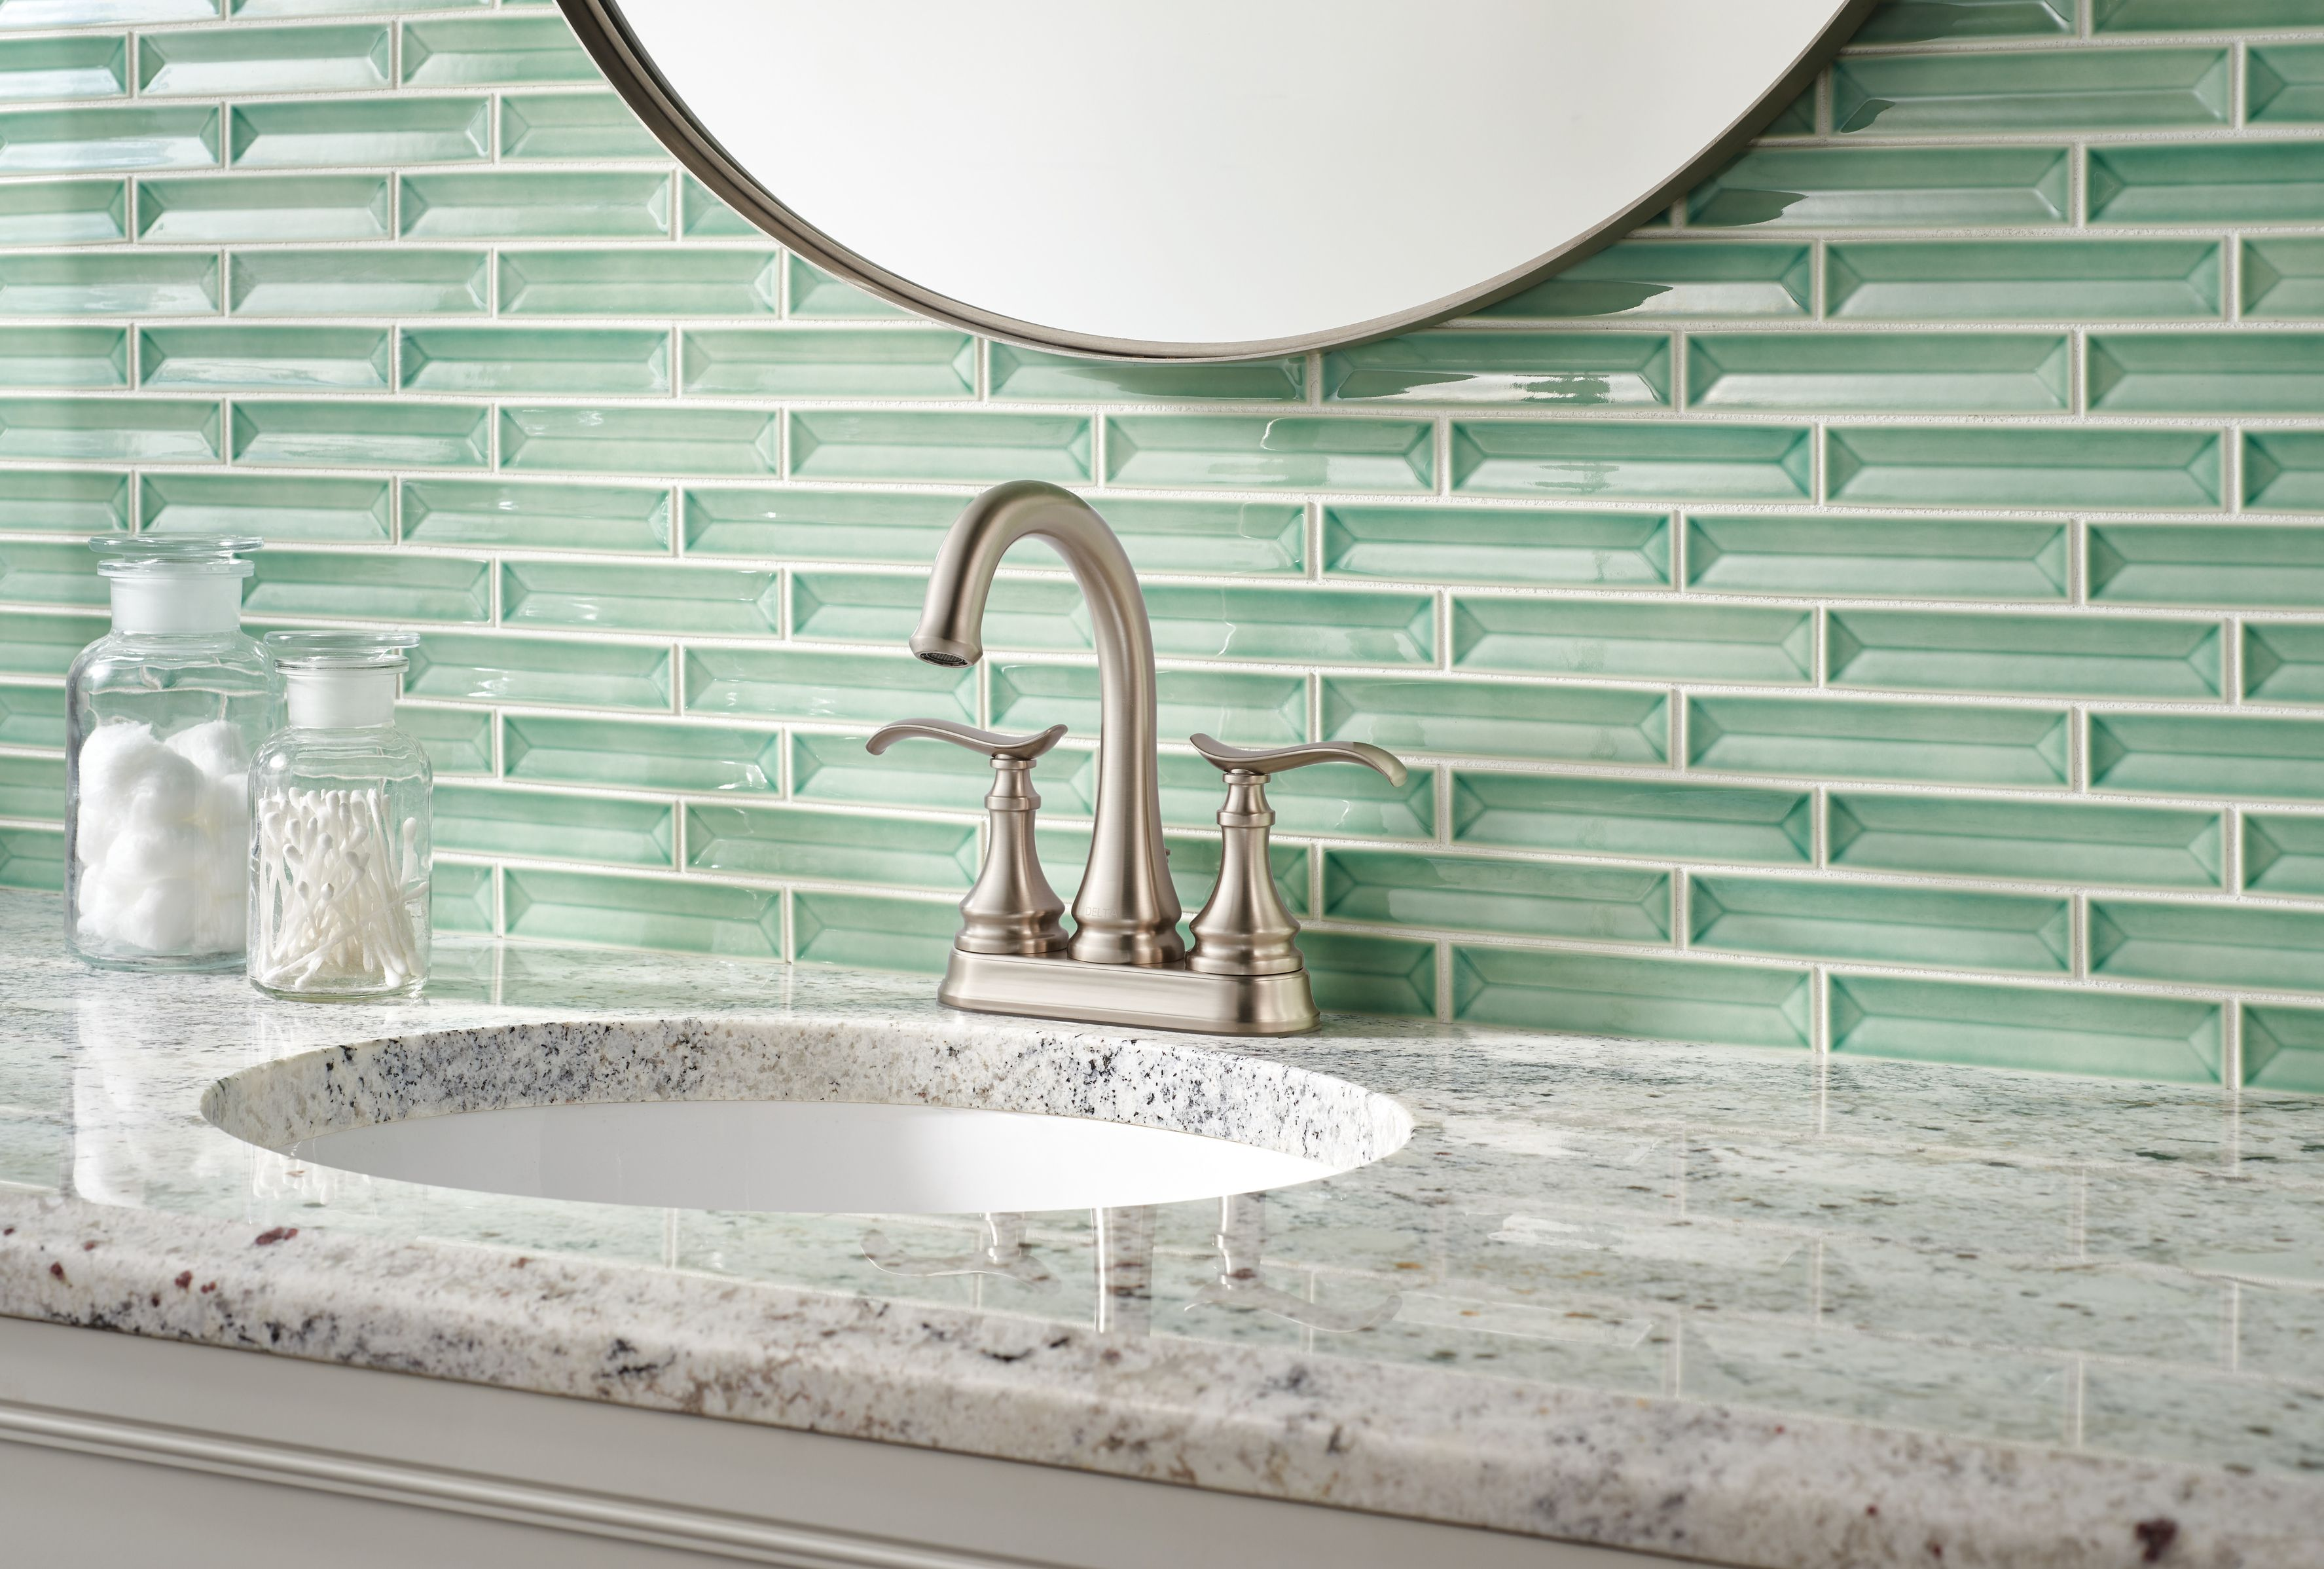 Stunning The Brushed Nickel Faucet From The Delta Faucet Kinley Collection Single Handle Bathroom Faucet Bathroom Makeover Single Handle Bathroom Sink Faucets [ 2396 x 3550 Pixel ]